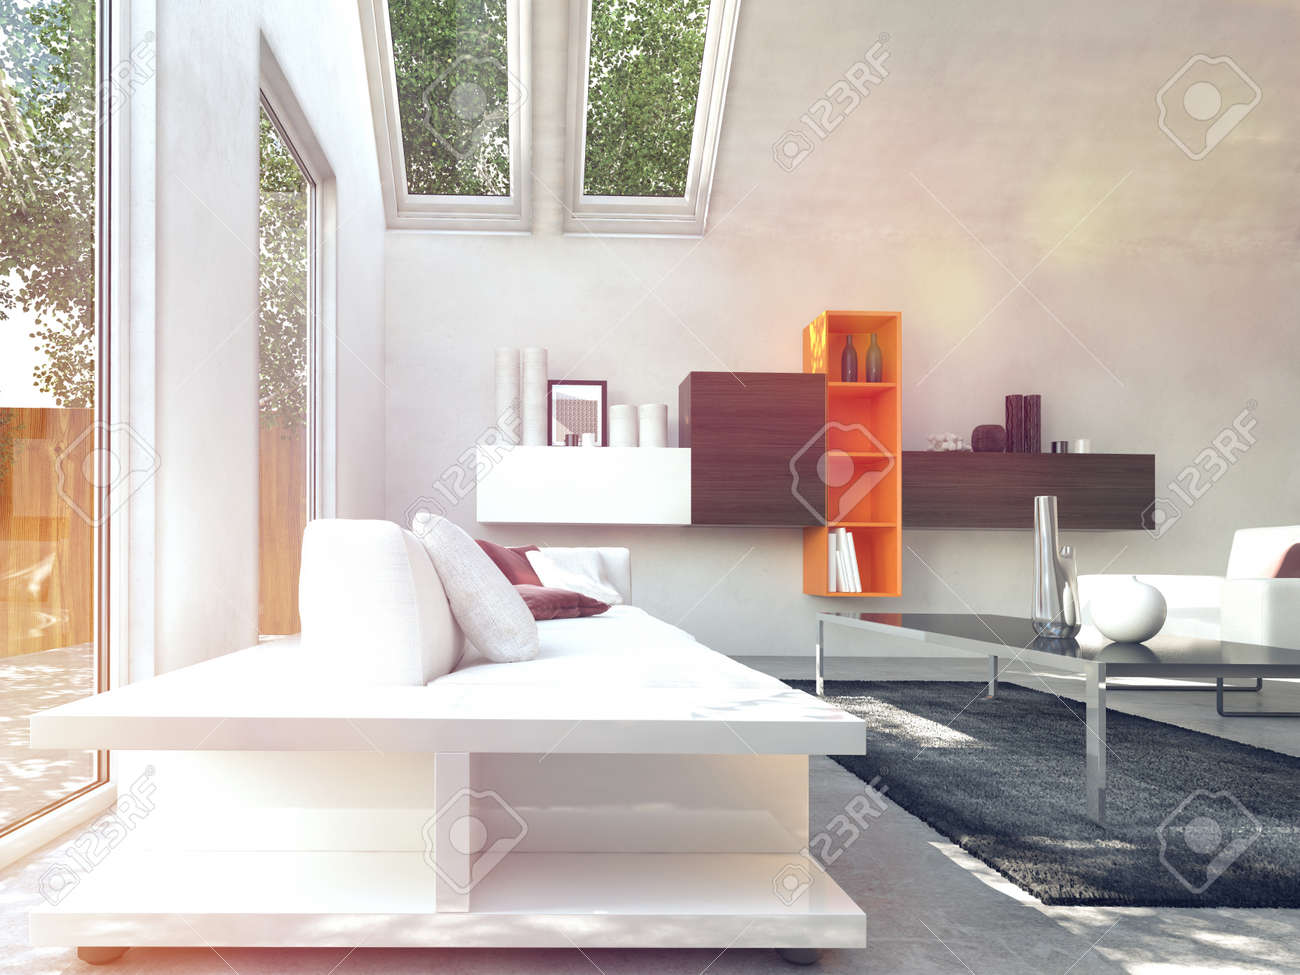 White Inspired Cosy Modern Design Living Room With Class Table At Center.  Stock Photo